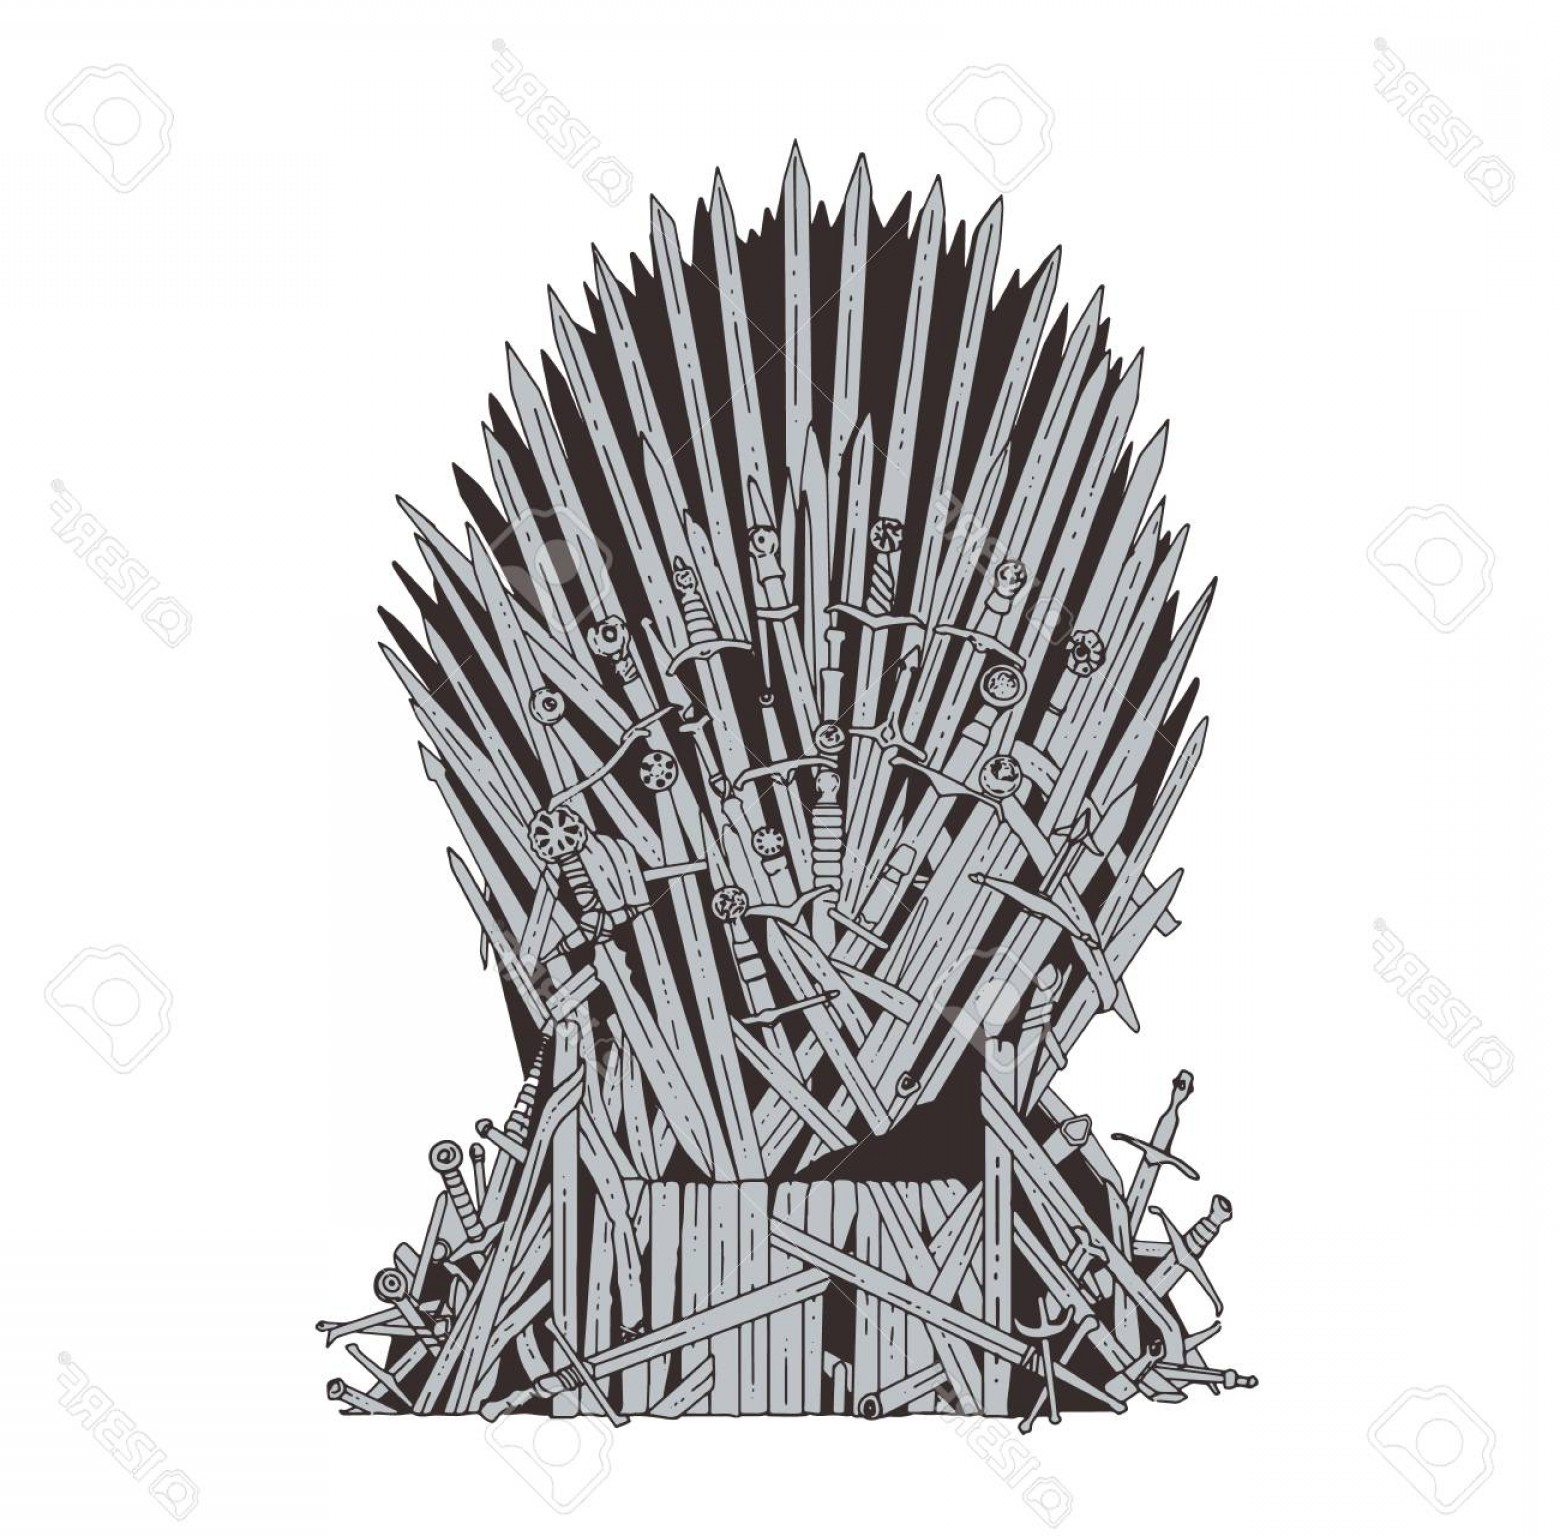 Game Of Thrones Sword Silhouette Vector: Photostock Vector Hand Drawn Iron Throne Of Westeros Made Of Antique Swords Or Metal Blades Ceremonial Chair Built Of